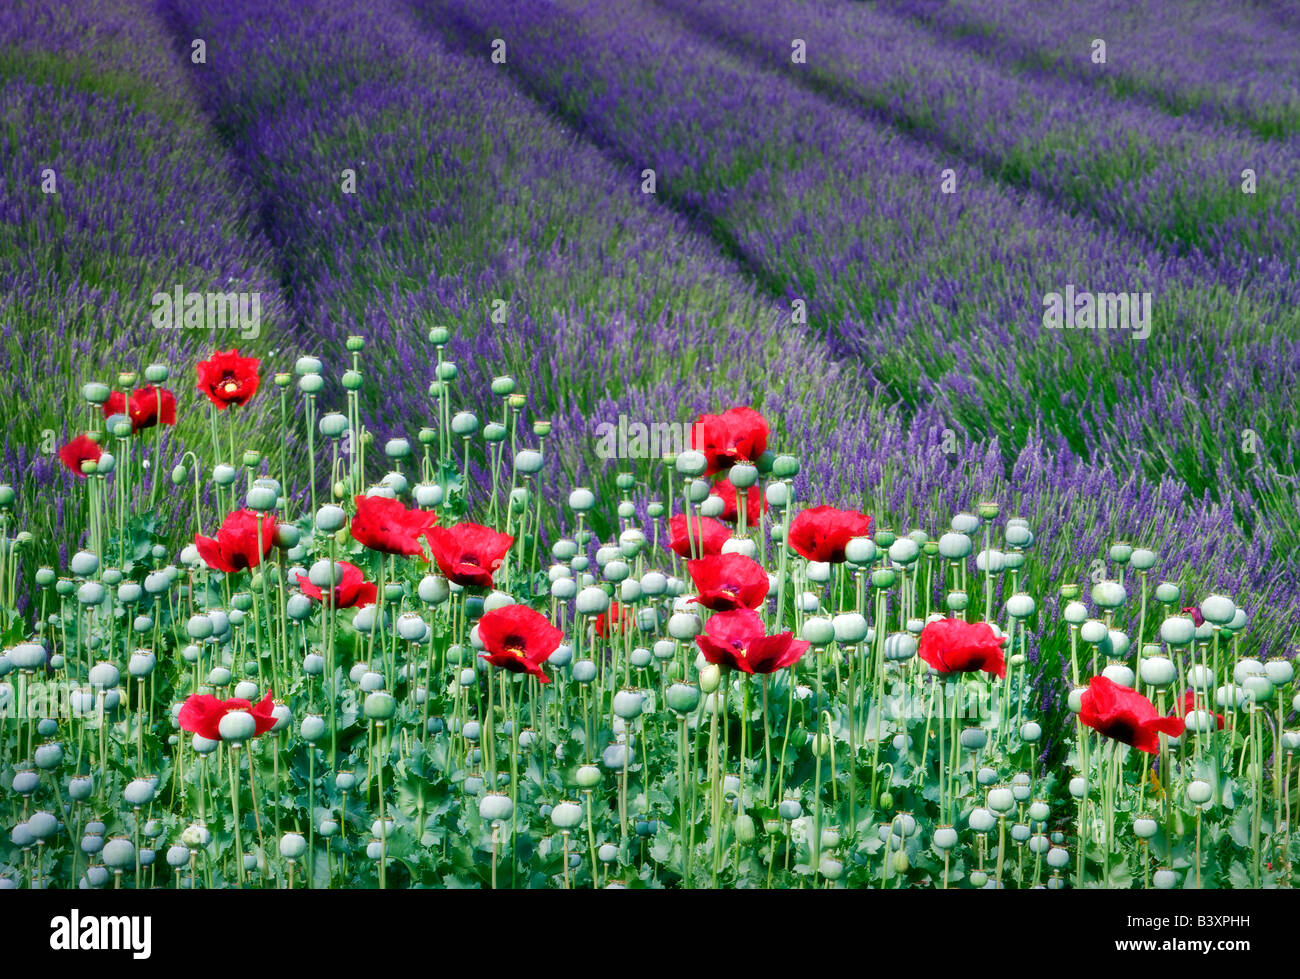 Red poppies and lavender field Jardin du Soleil Washington - Stock Image